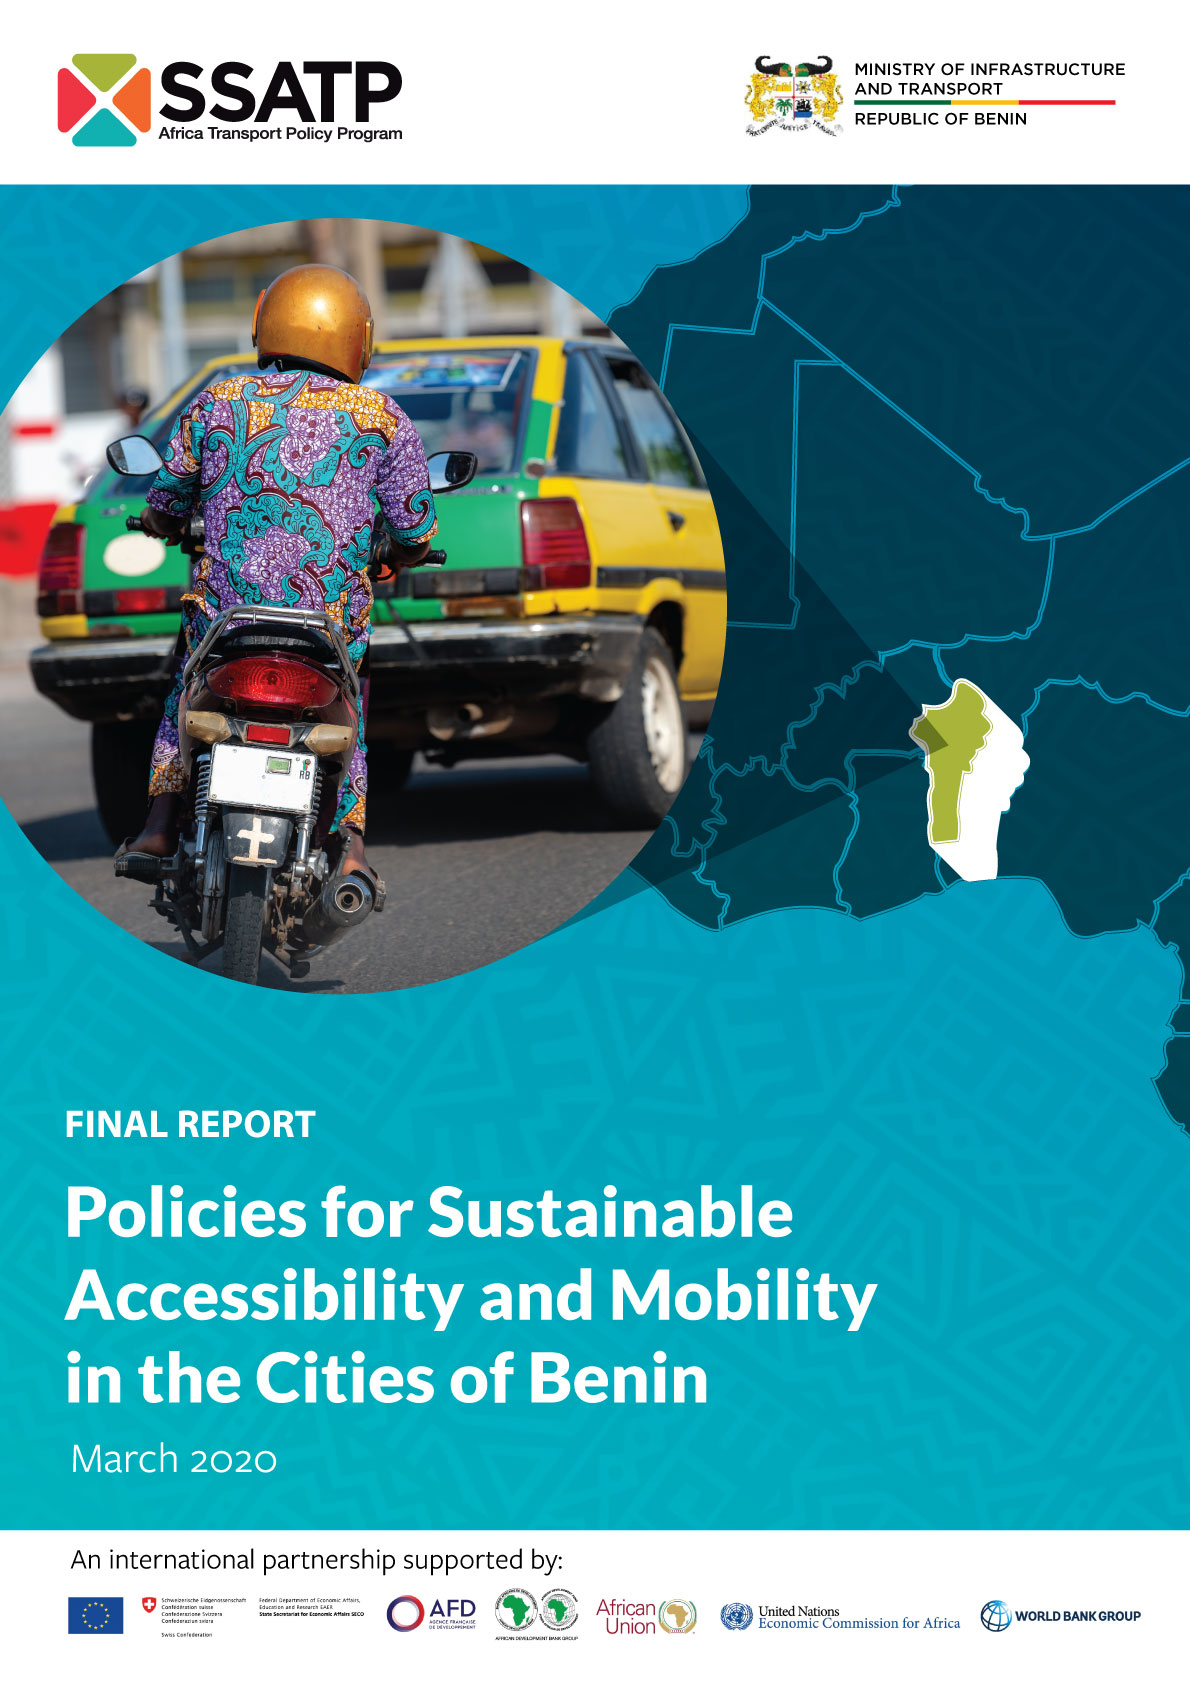 Policies for Sustainable Accessibility and Mobility in the Cities of Benin - Diagnostic Study